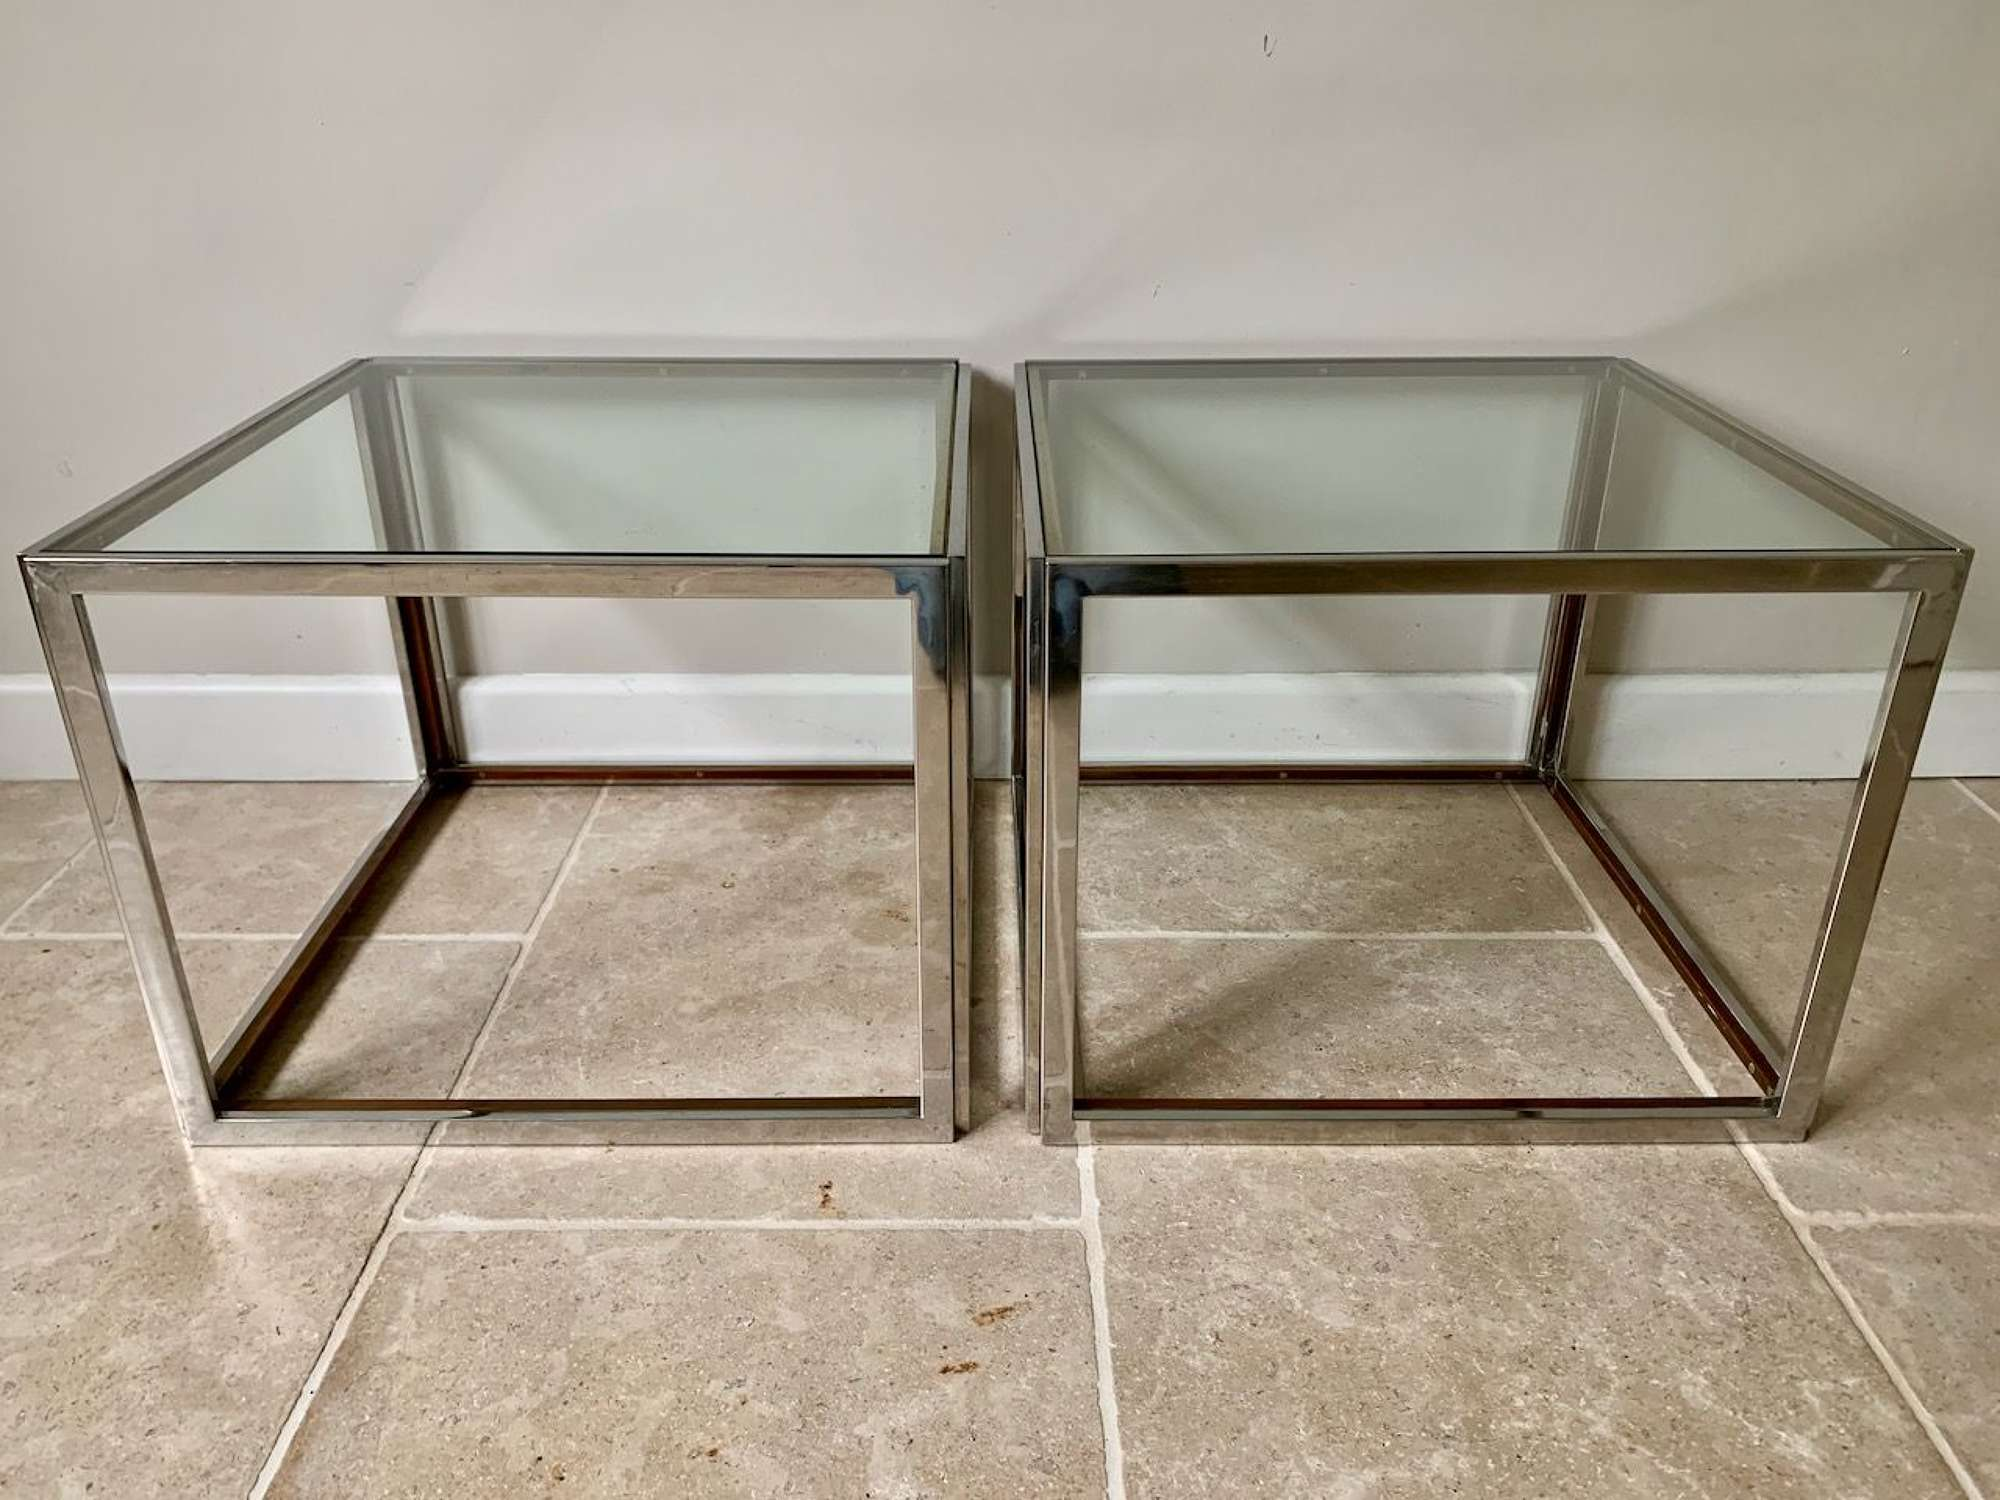 Another pair of silver and gold side tables